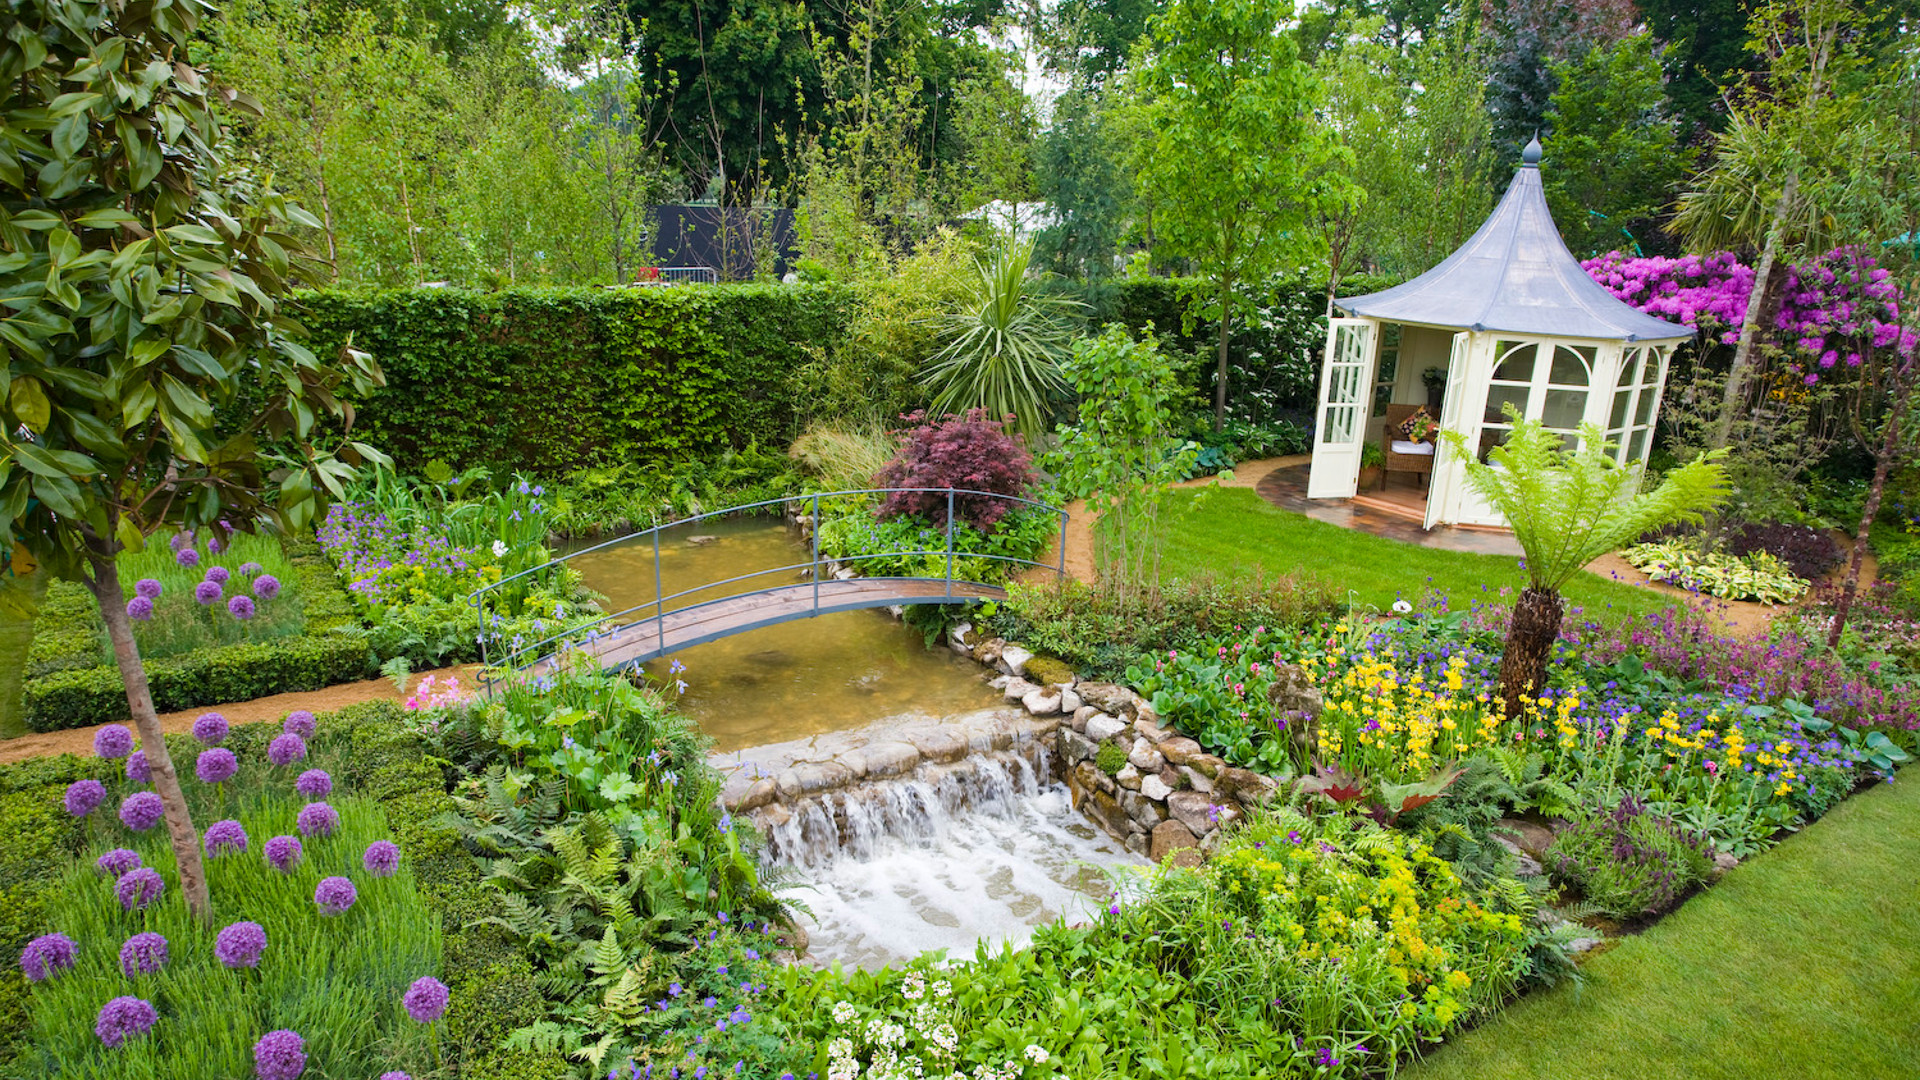 Tim austen garden designs designer gardens for Garden design inspiration